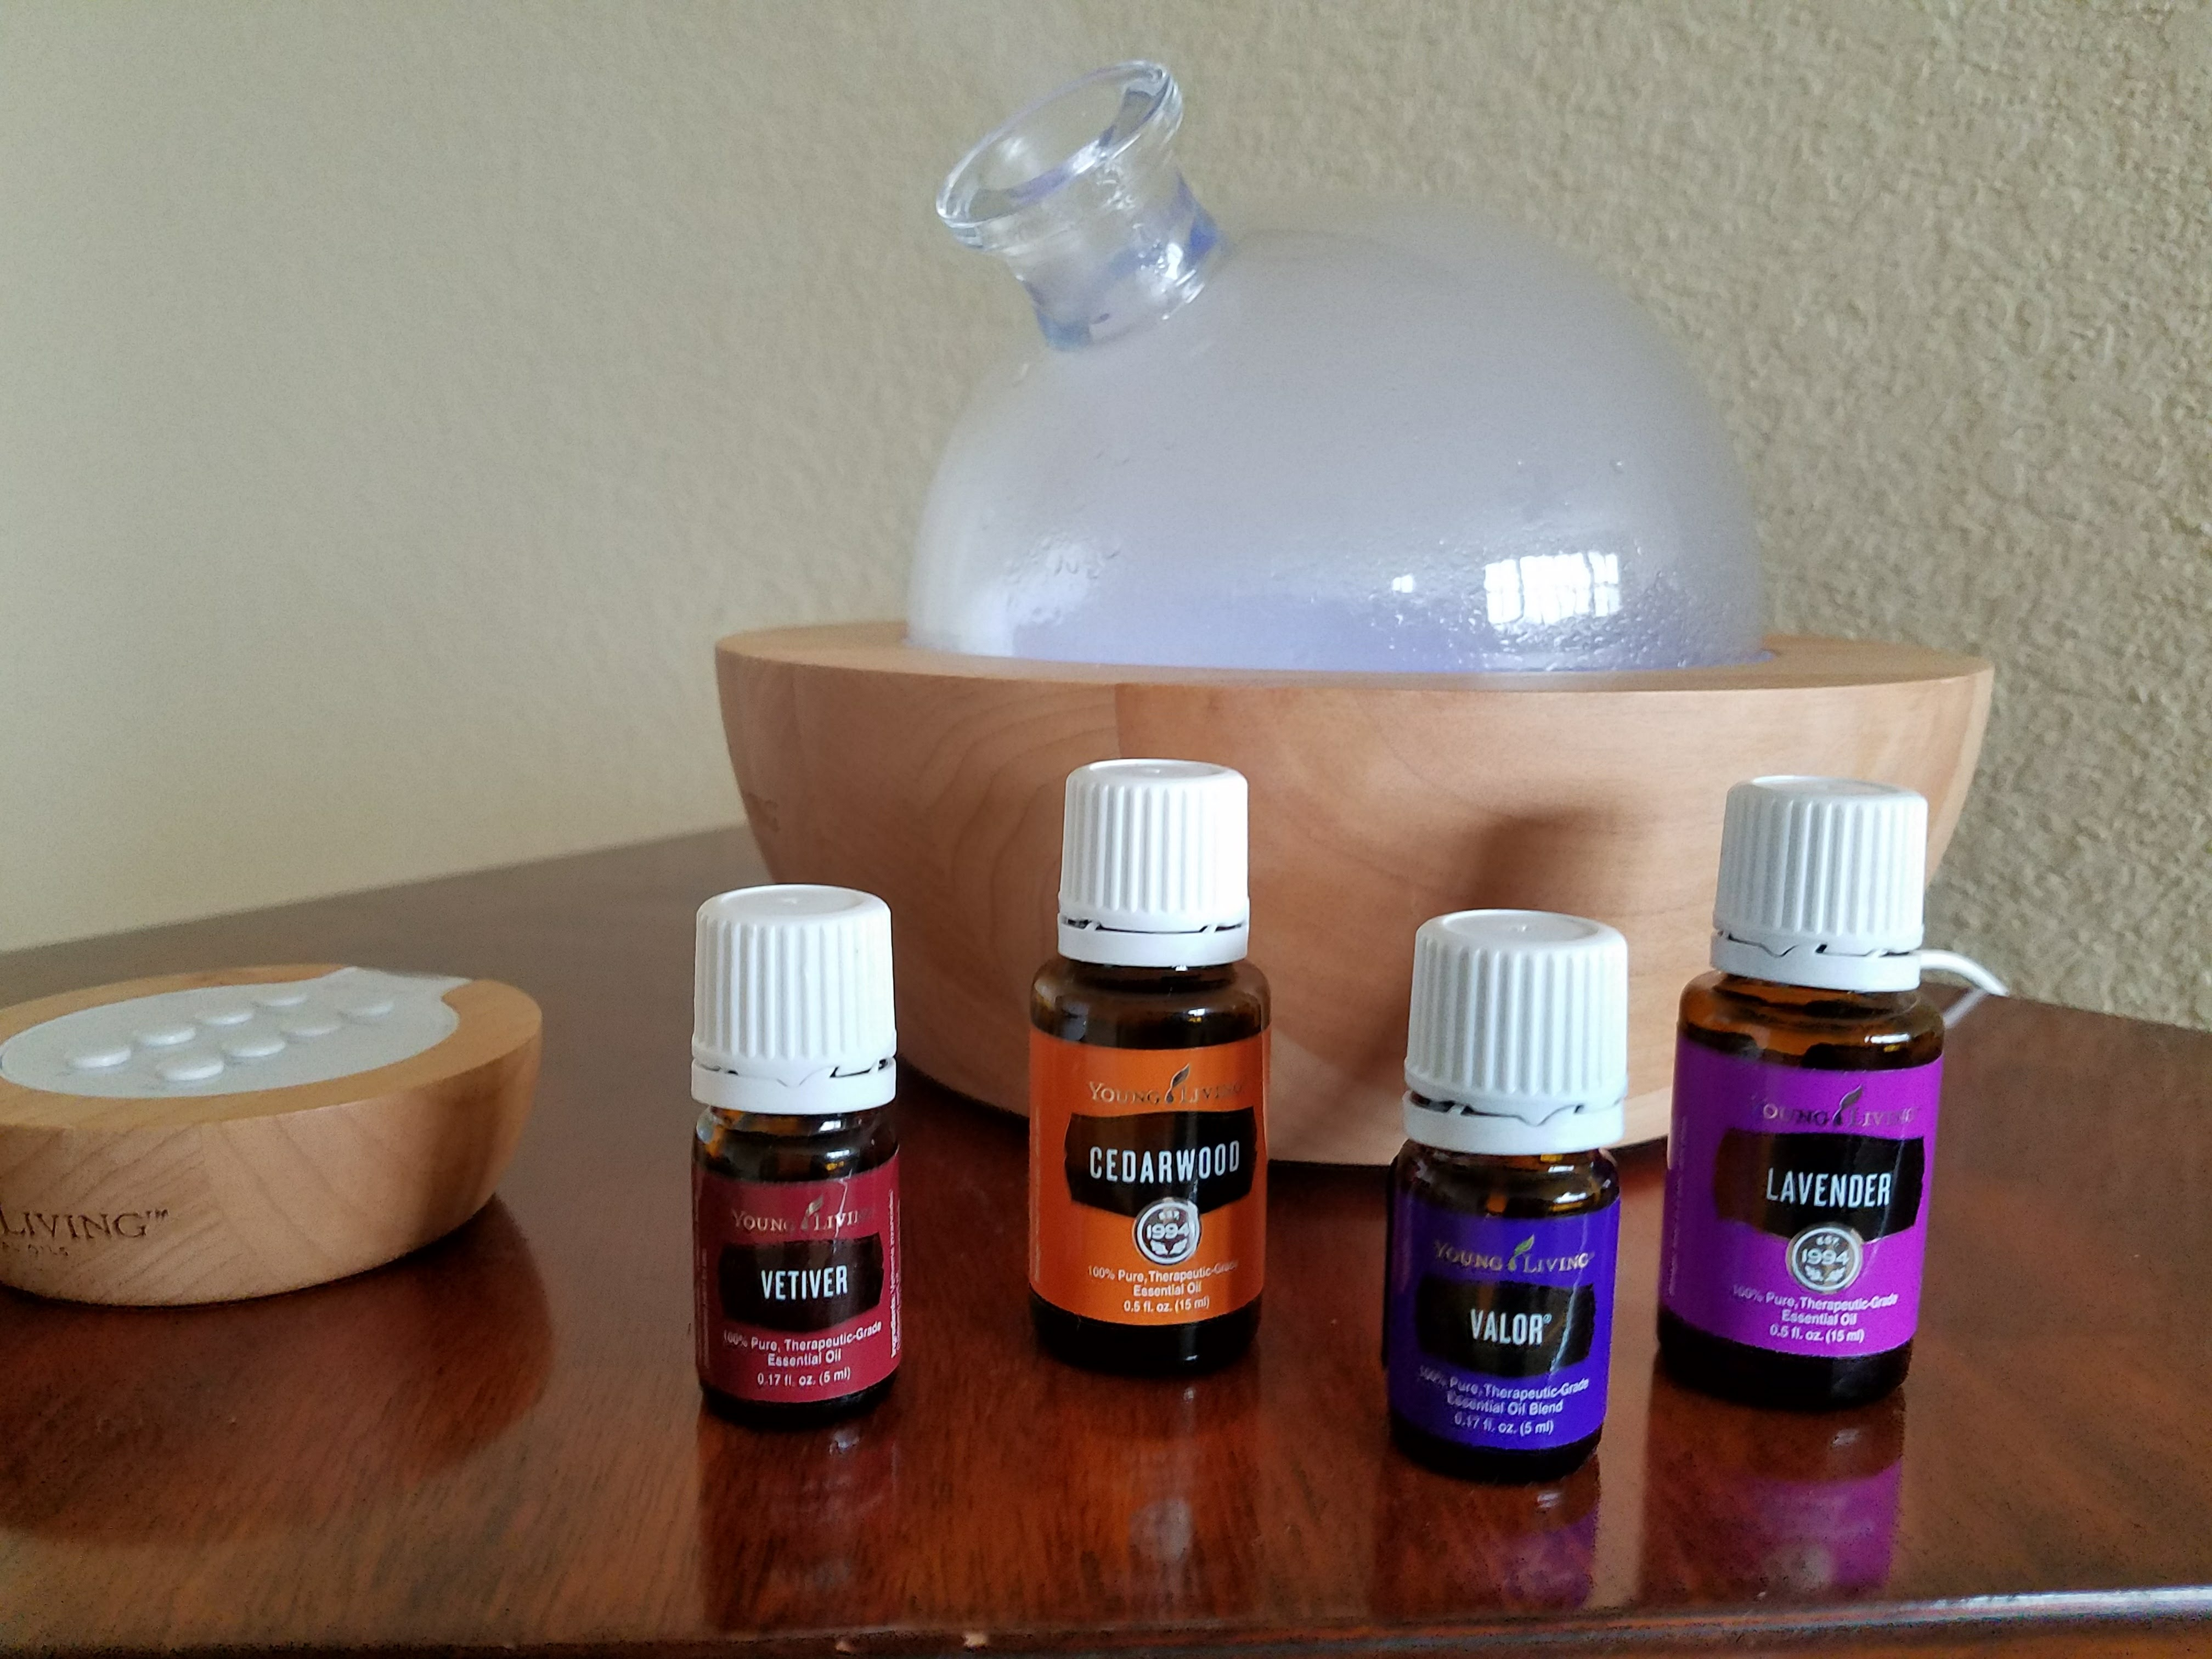 Image of diffuser and four oils